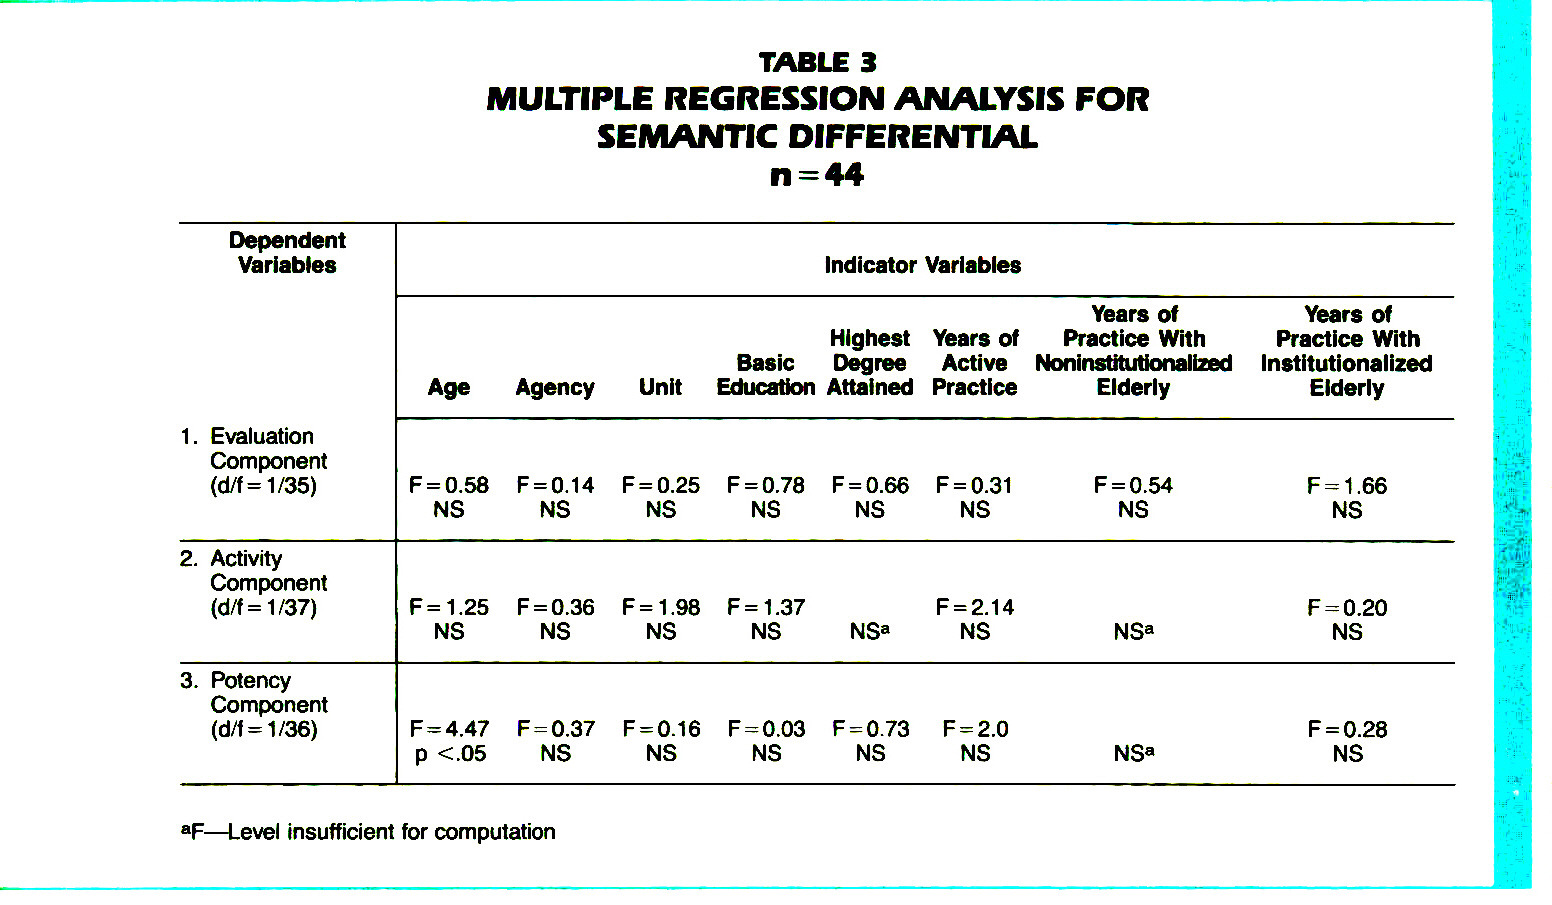 TABLE 3MULTIPLE REGRESSION ANALYSIS FOR SEMANTIC DIFFERENTIAL n = 44